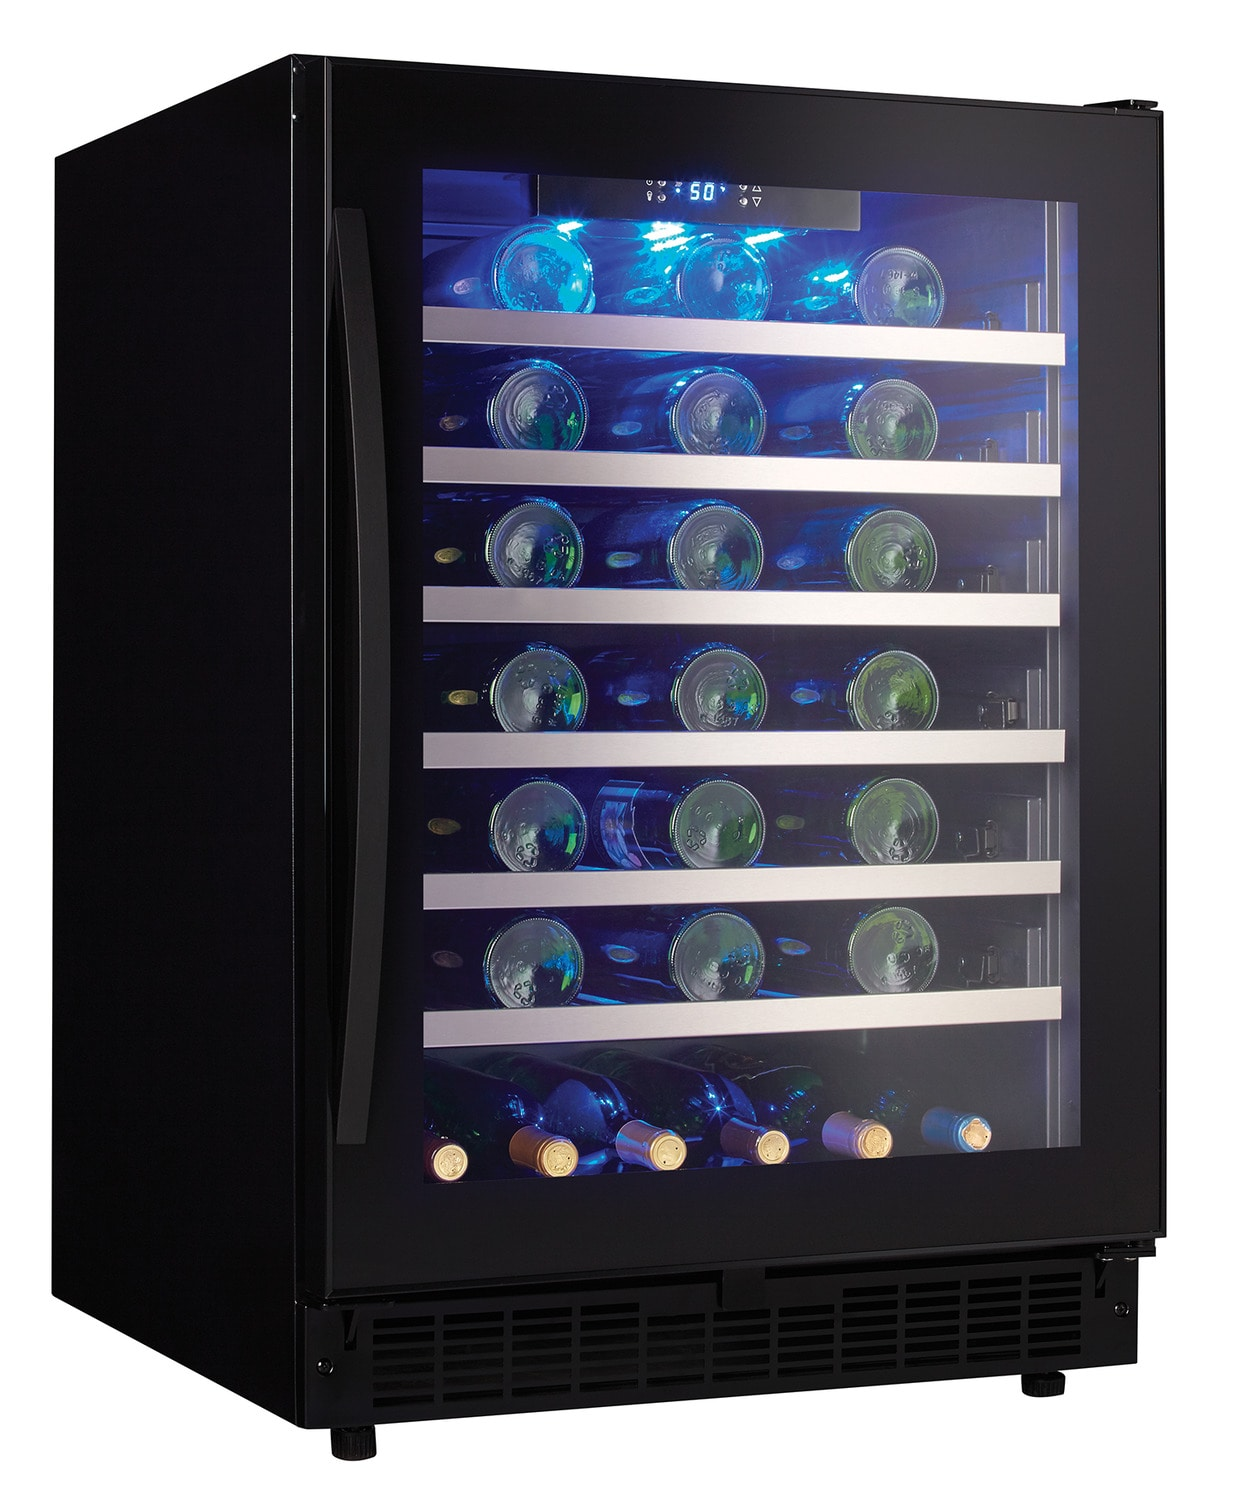 Danby Black Wine Cooler (5.6 Cu. Ft.) - SSWC056D1B